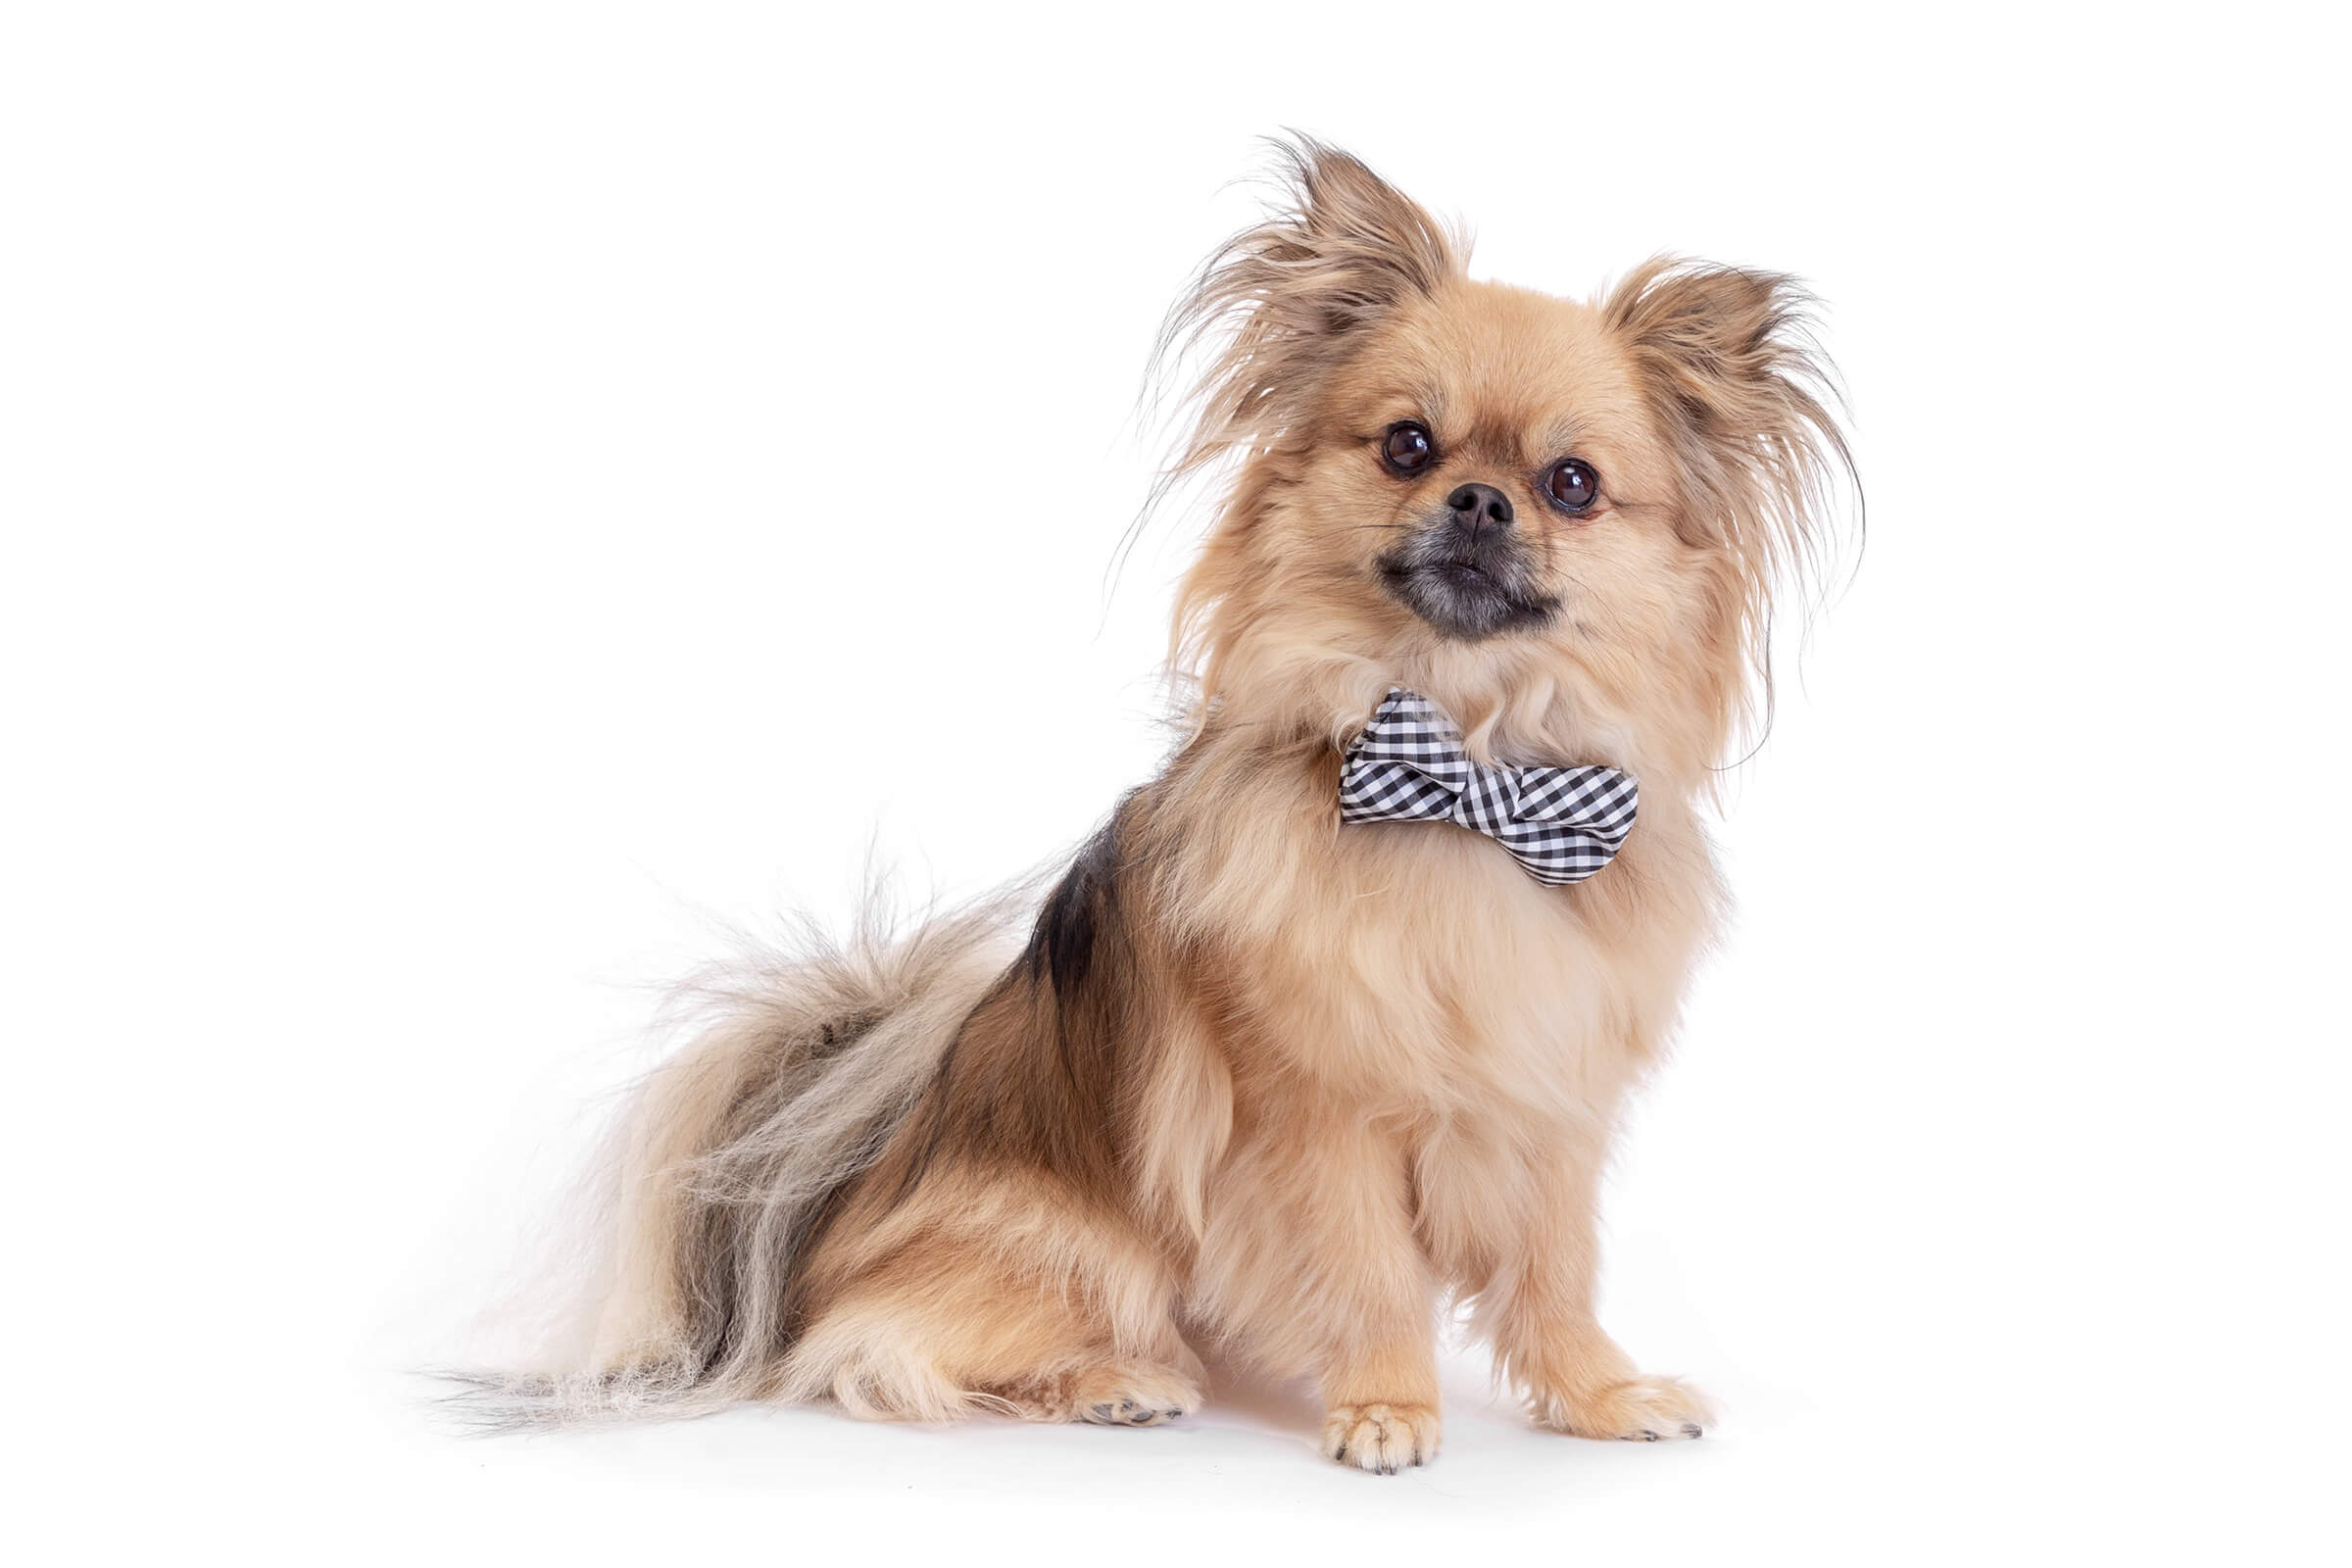 Pomeranian dog with bowtie commercial white